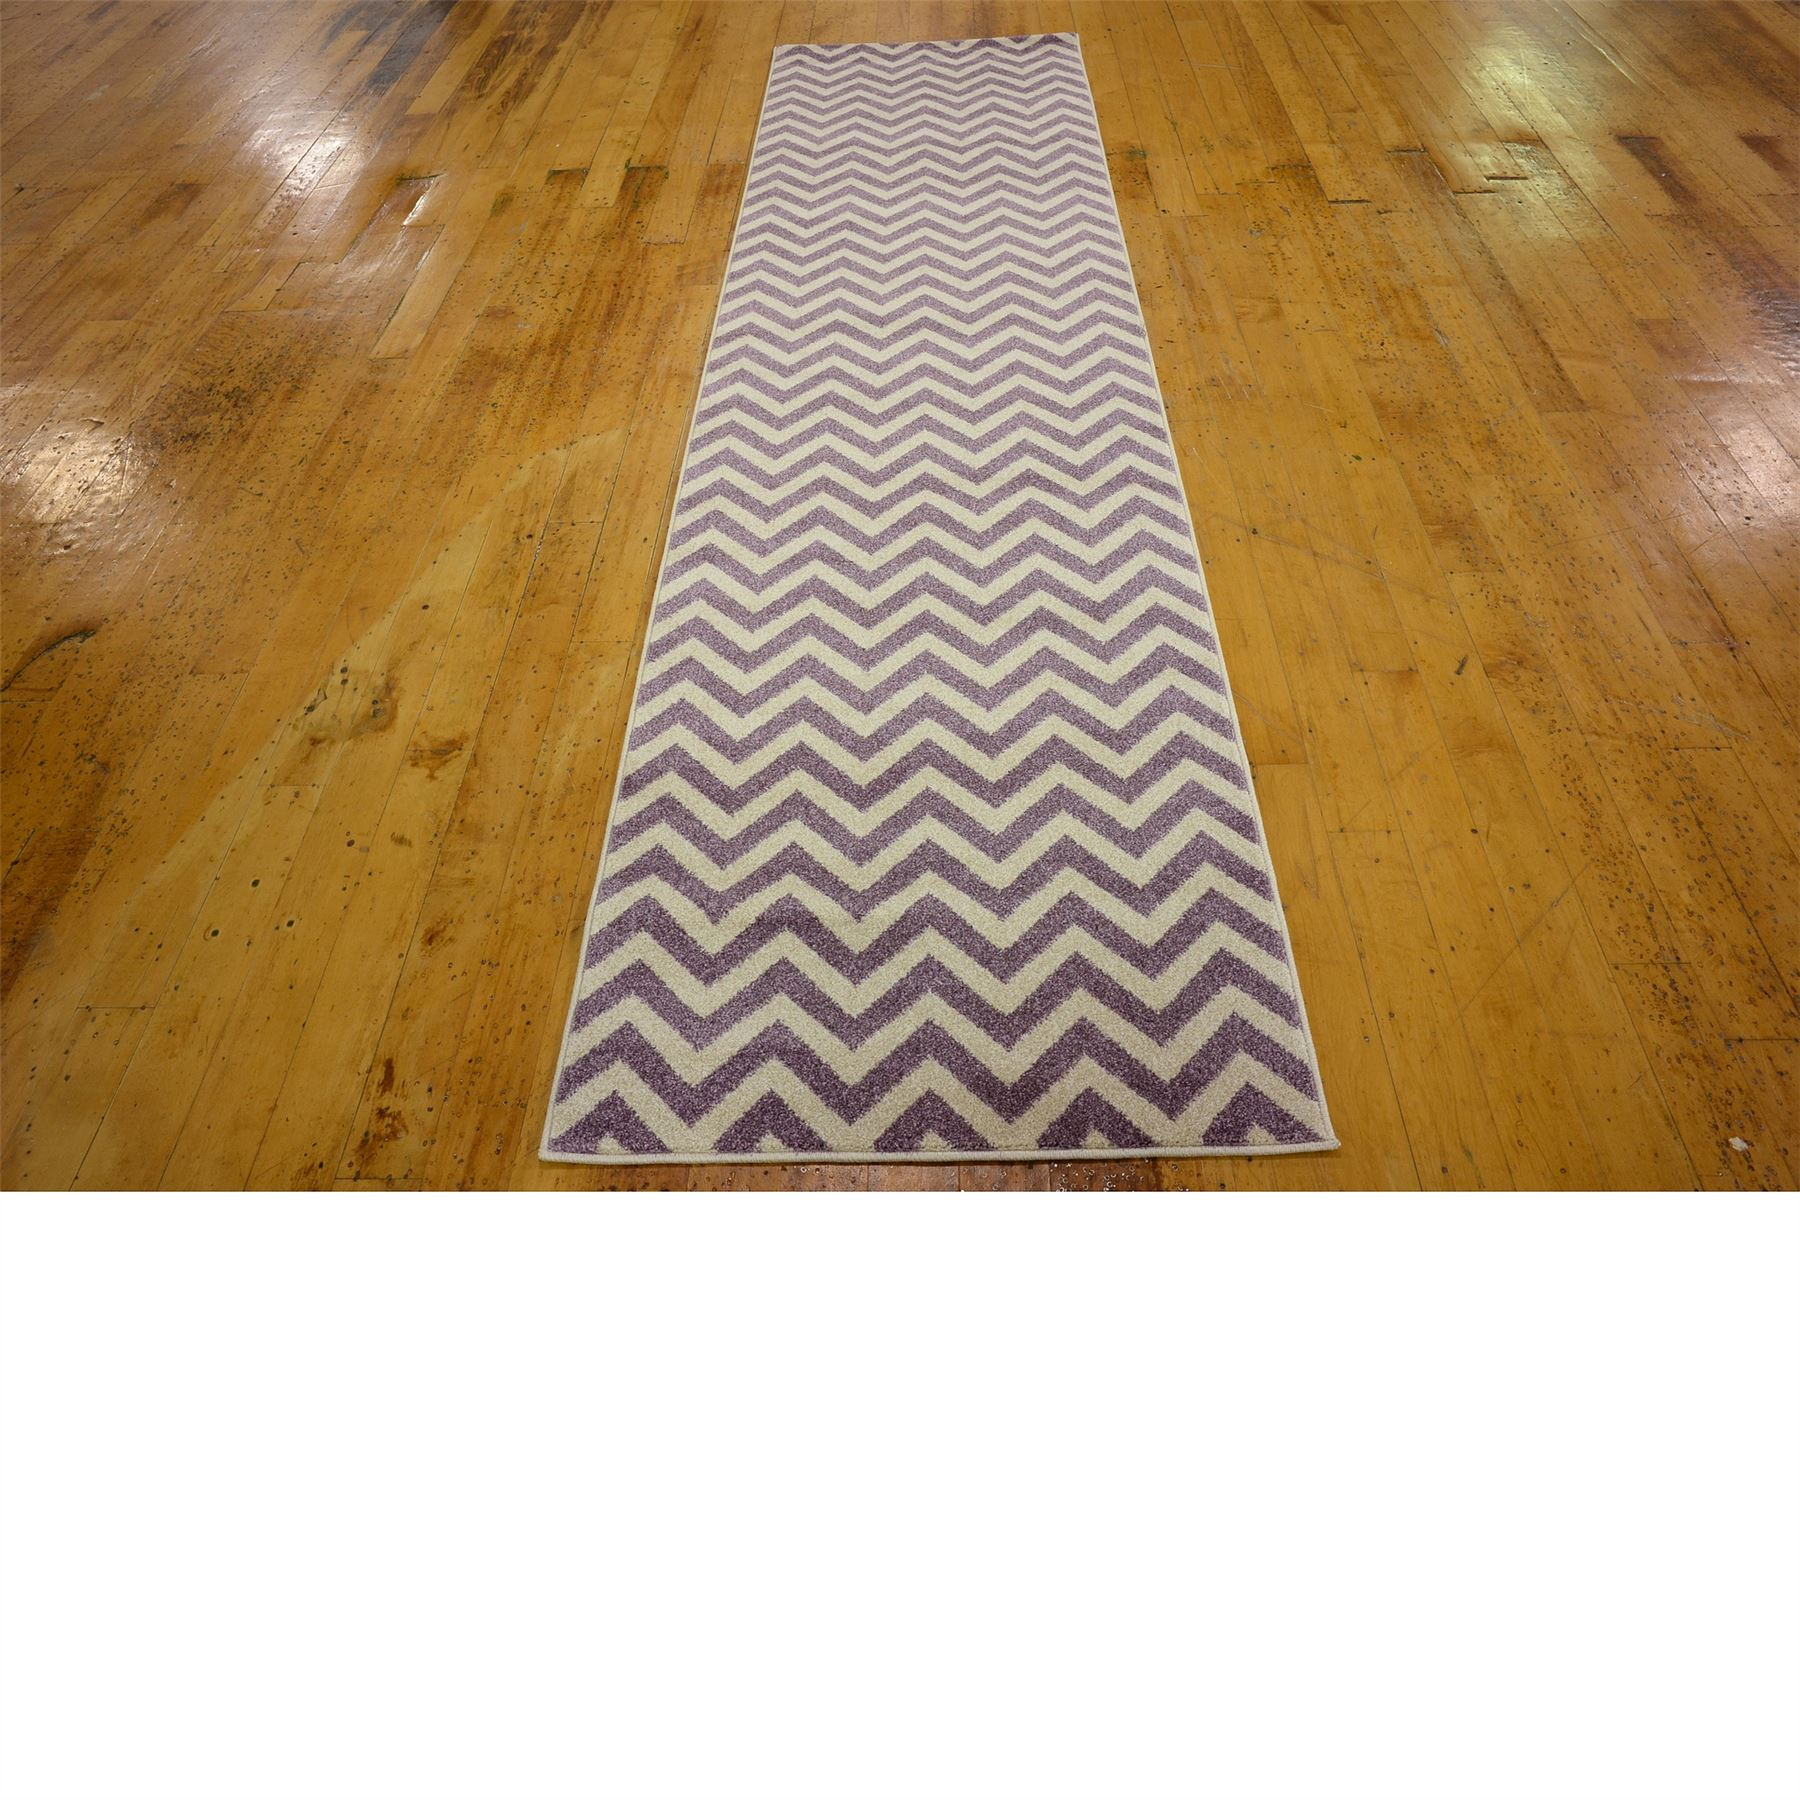 Modern Area Rugs Brand New Rugs Contemporary Carpet Soft